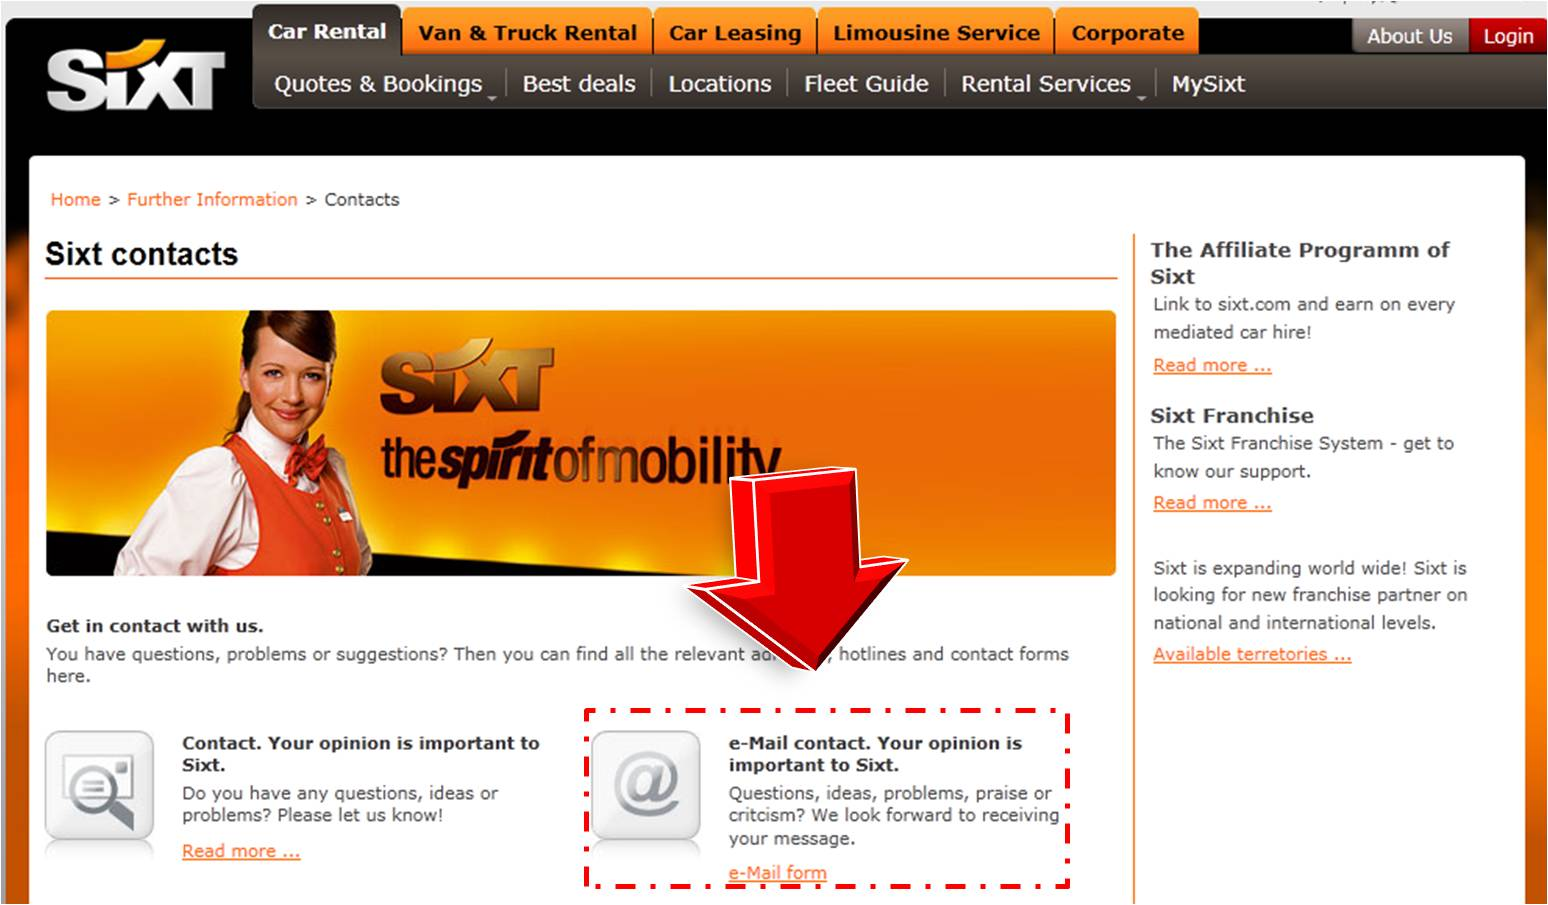 How to Save at Sixt Car Rental